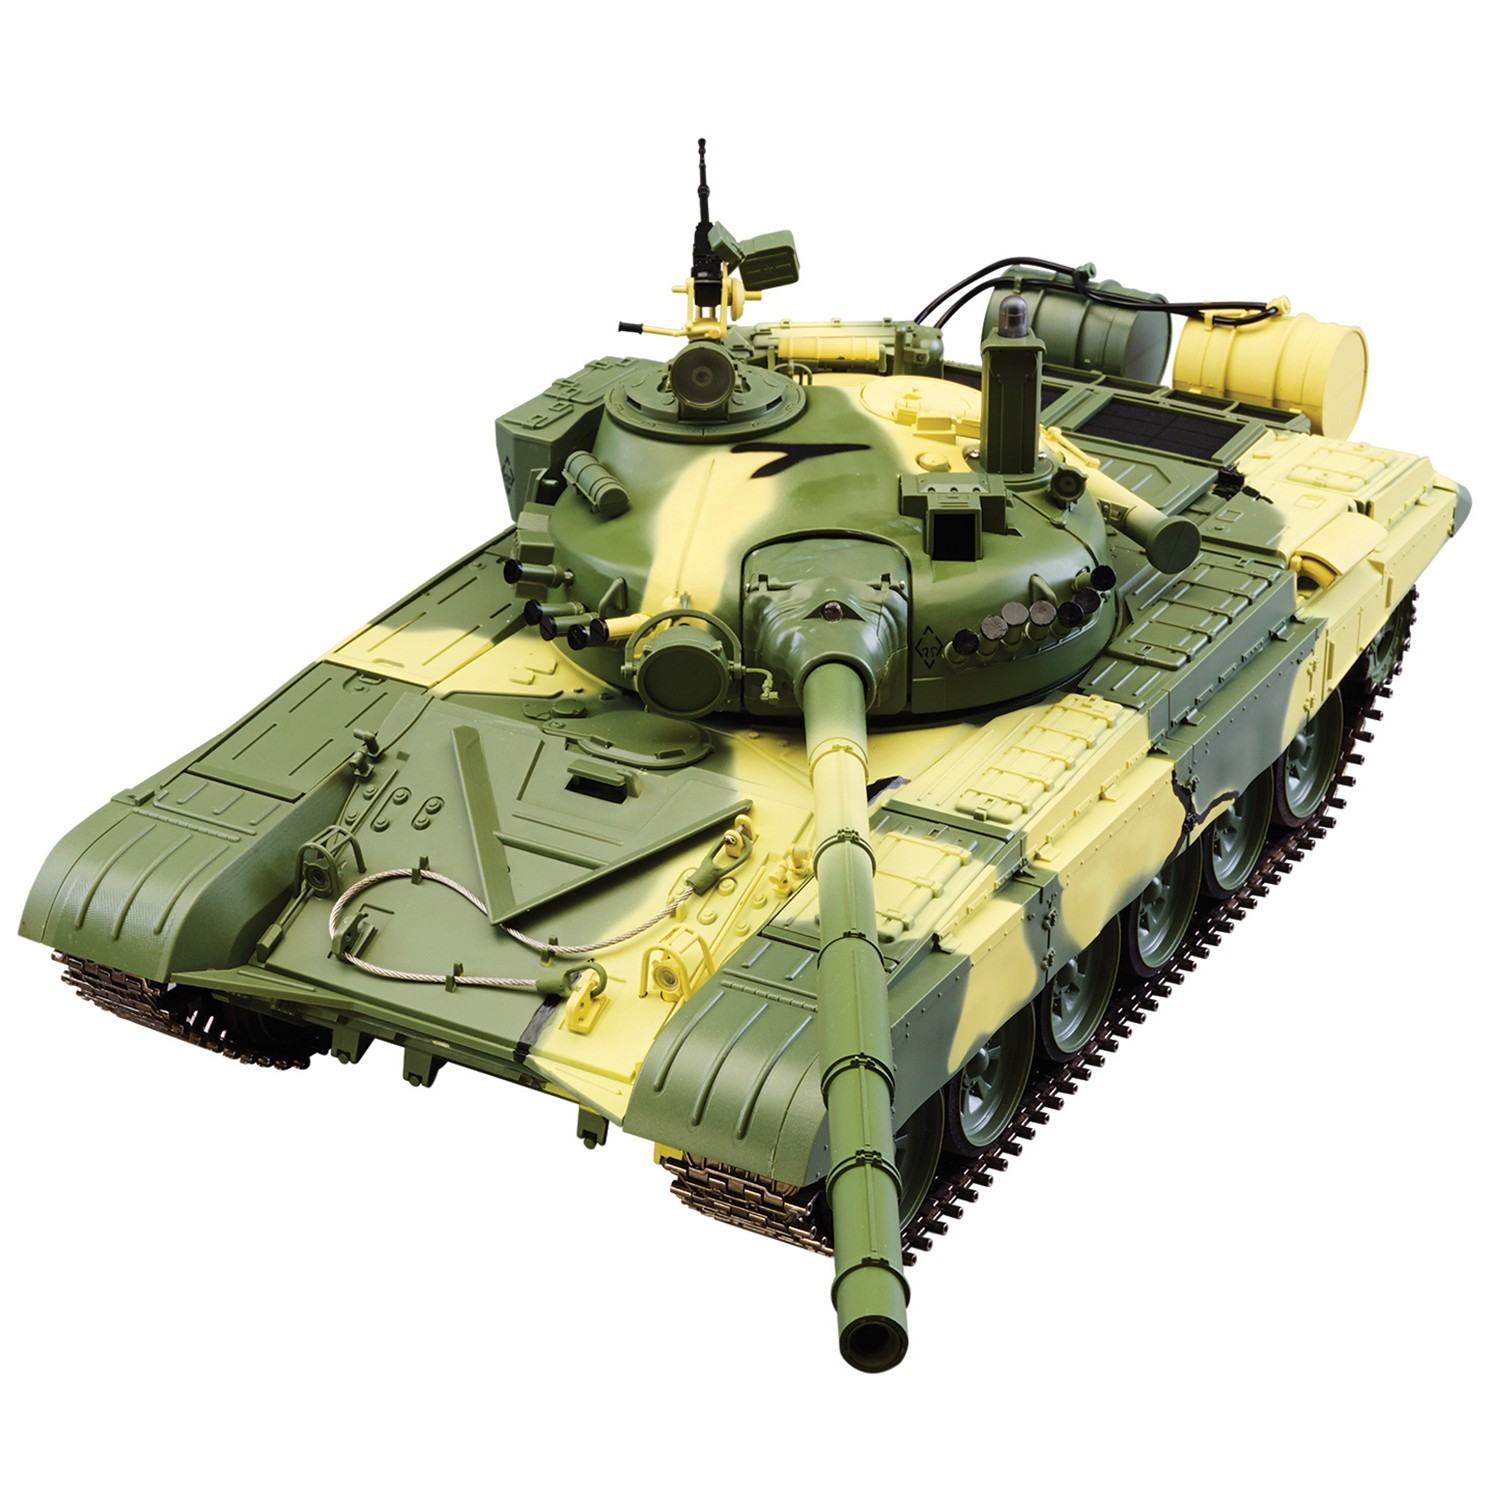 remote control army vehicles with Build T72 Russian Tank on Hoverwing Flying Hovercraft moreover linearcollider moreover Does This Photo Show A Robotic Spy Mosquito as well China Military Drone Stealth Russia 142 as well Index.